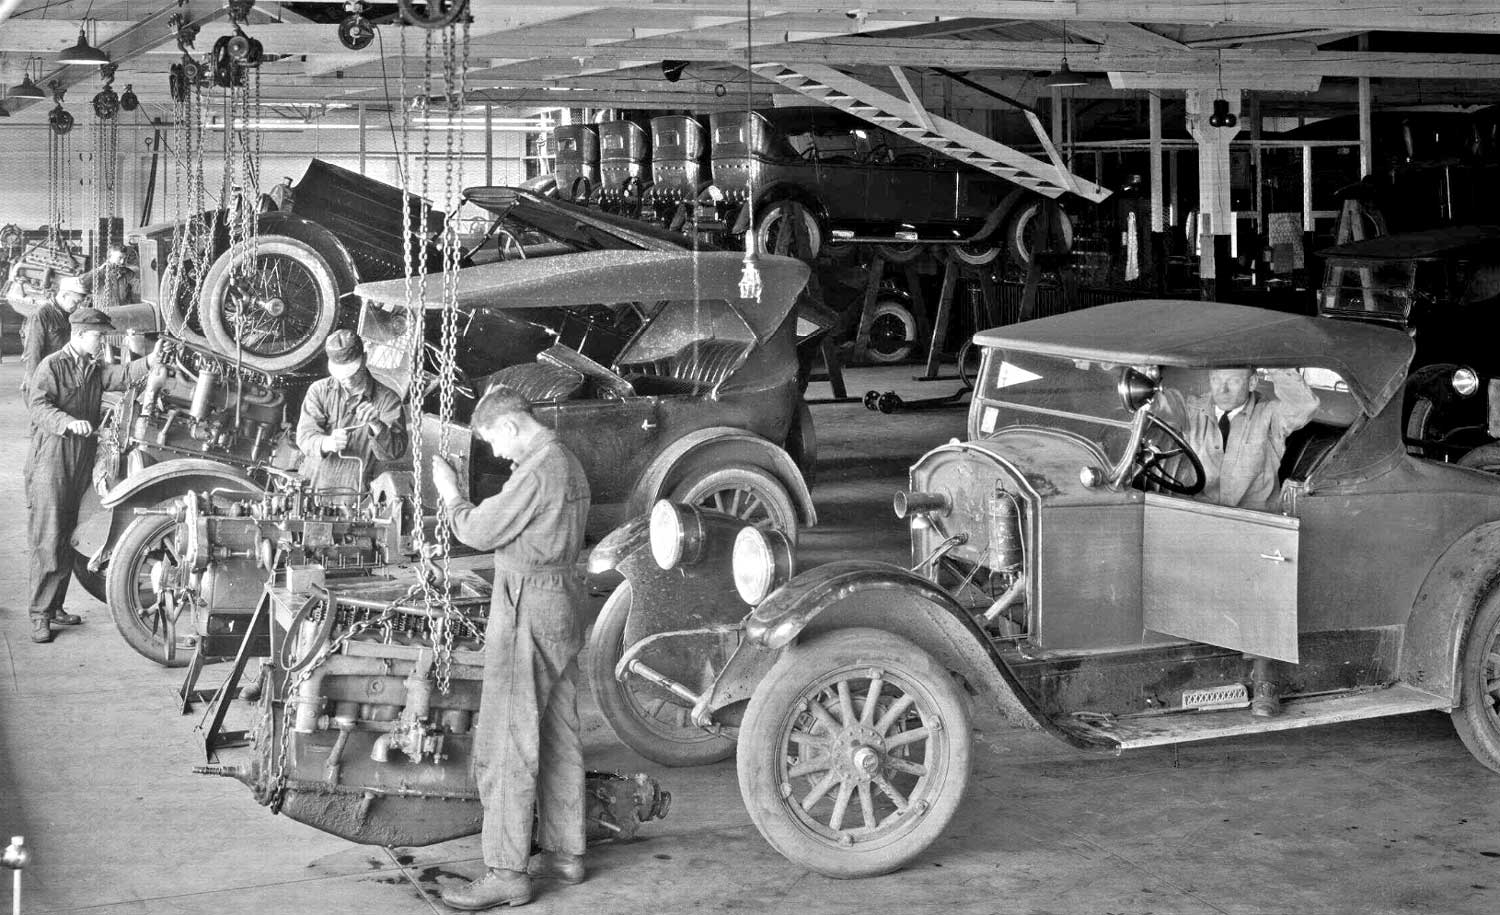 Vintage 1920s Car Service Department | The Old Motor